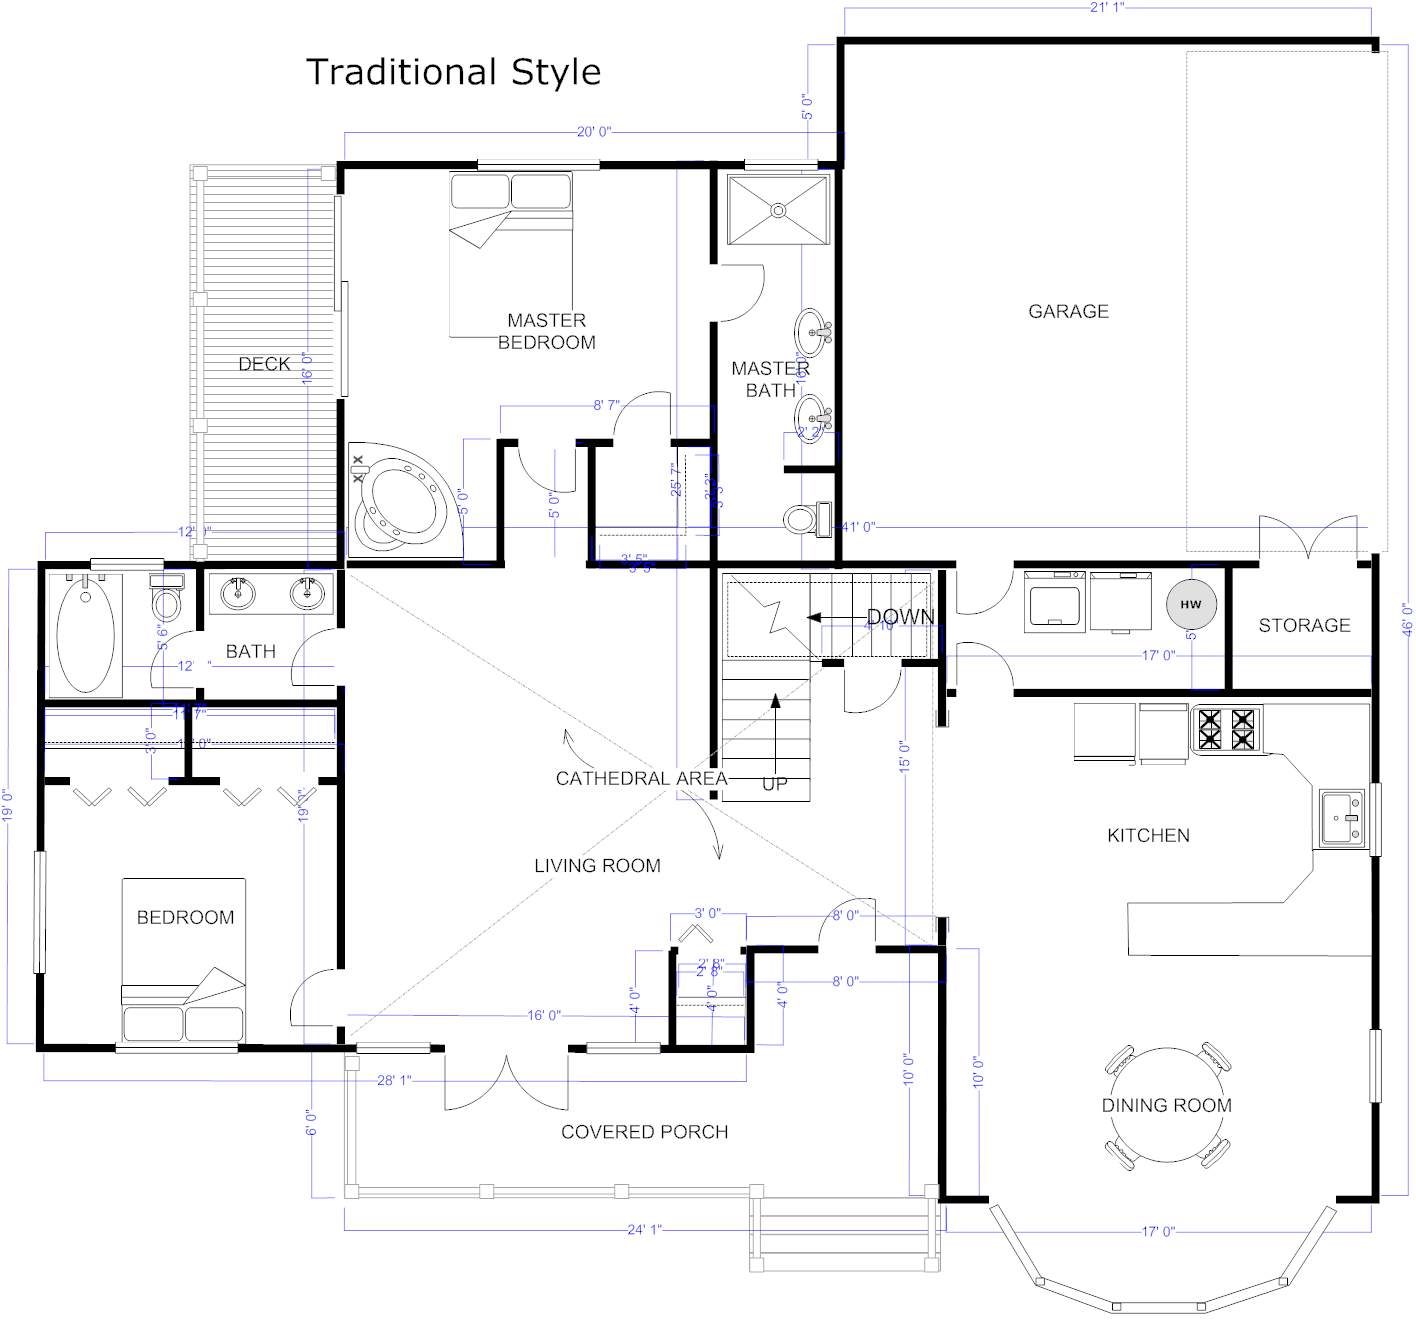 ... Free Home Design Idea Inspiration. Architecture Software